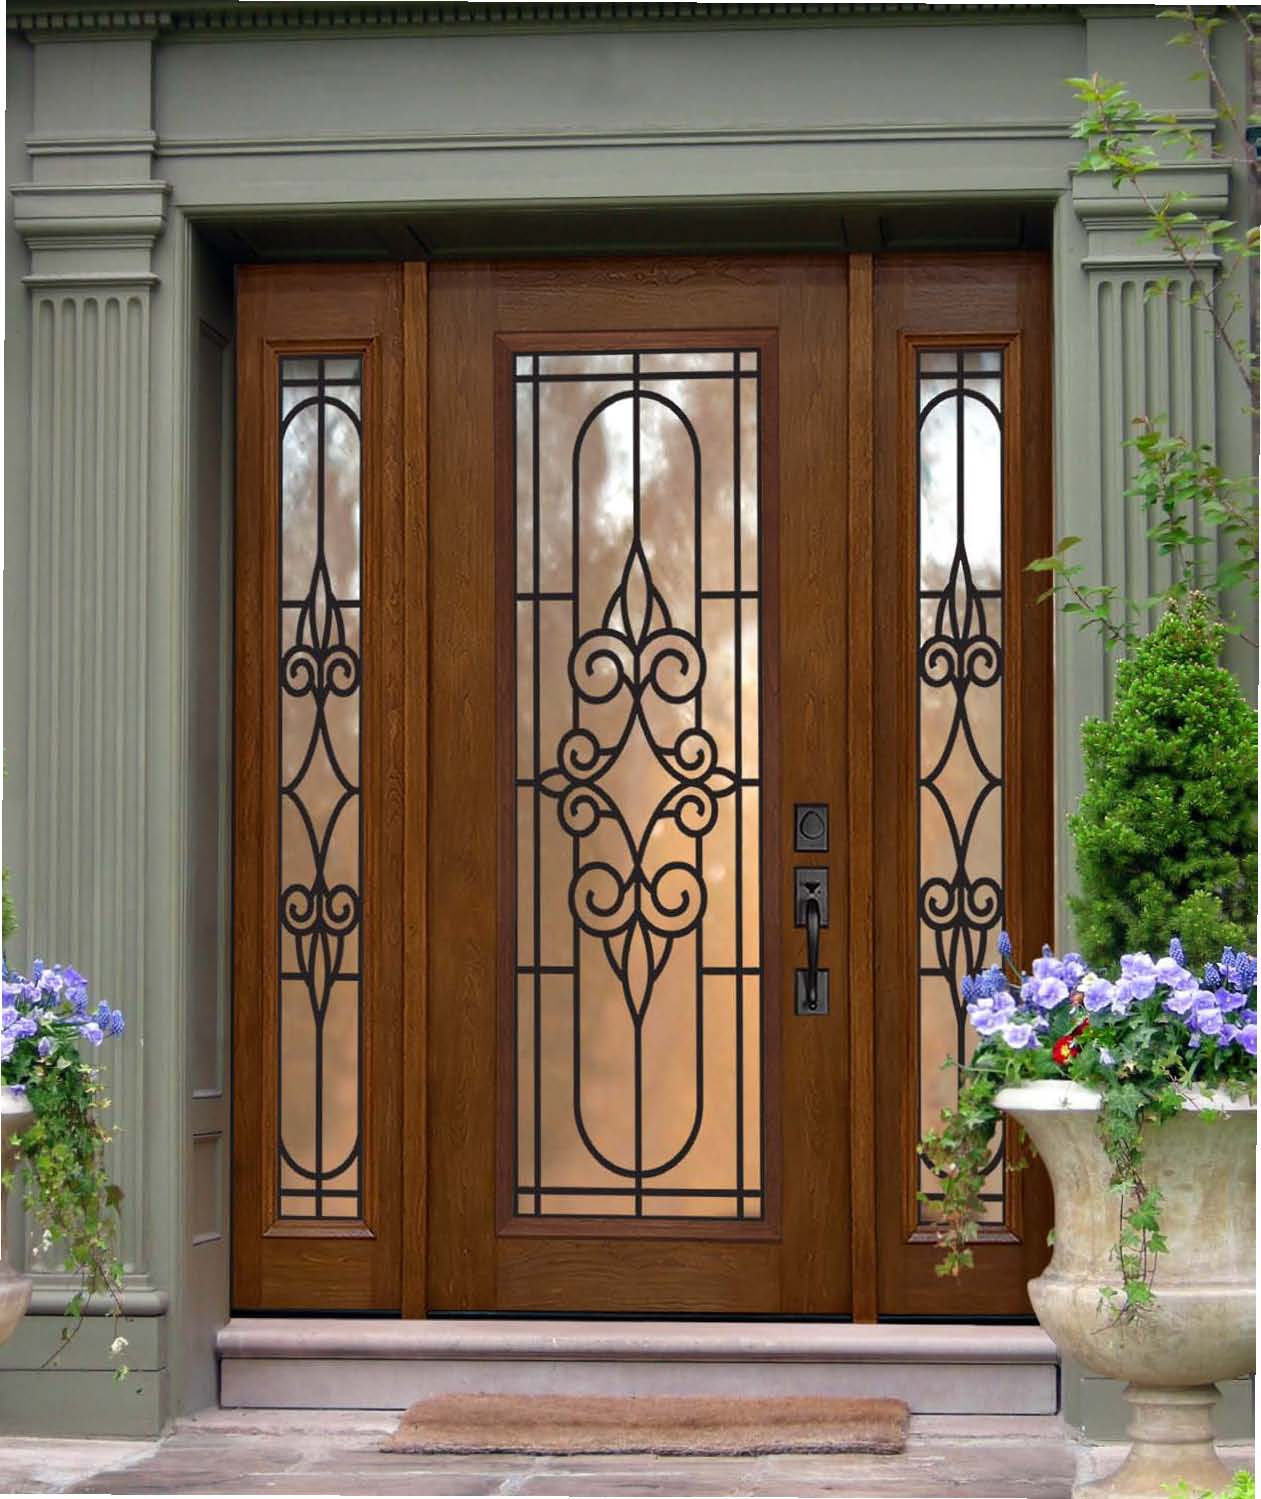 1499 #613B1E US Door And More Inc.: Make Your Entry Door Trendy With Sidelights pic Metal Entry Doors With Sidelights 39211261